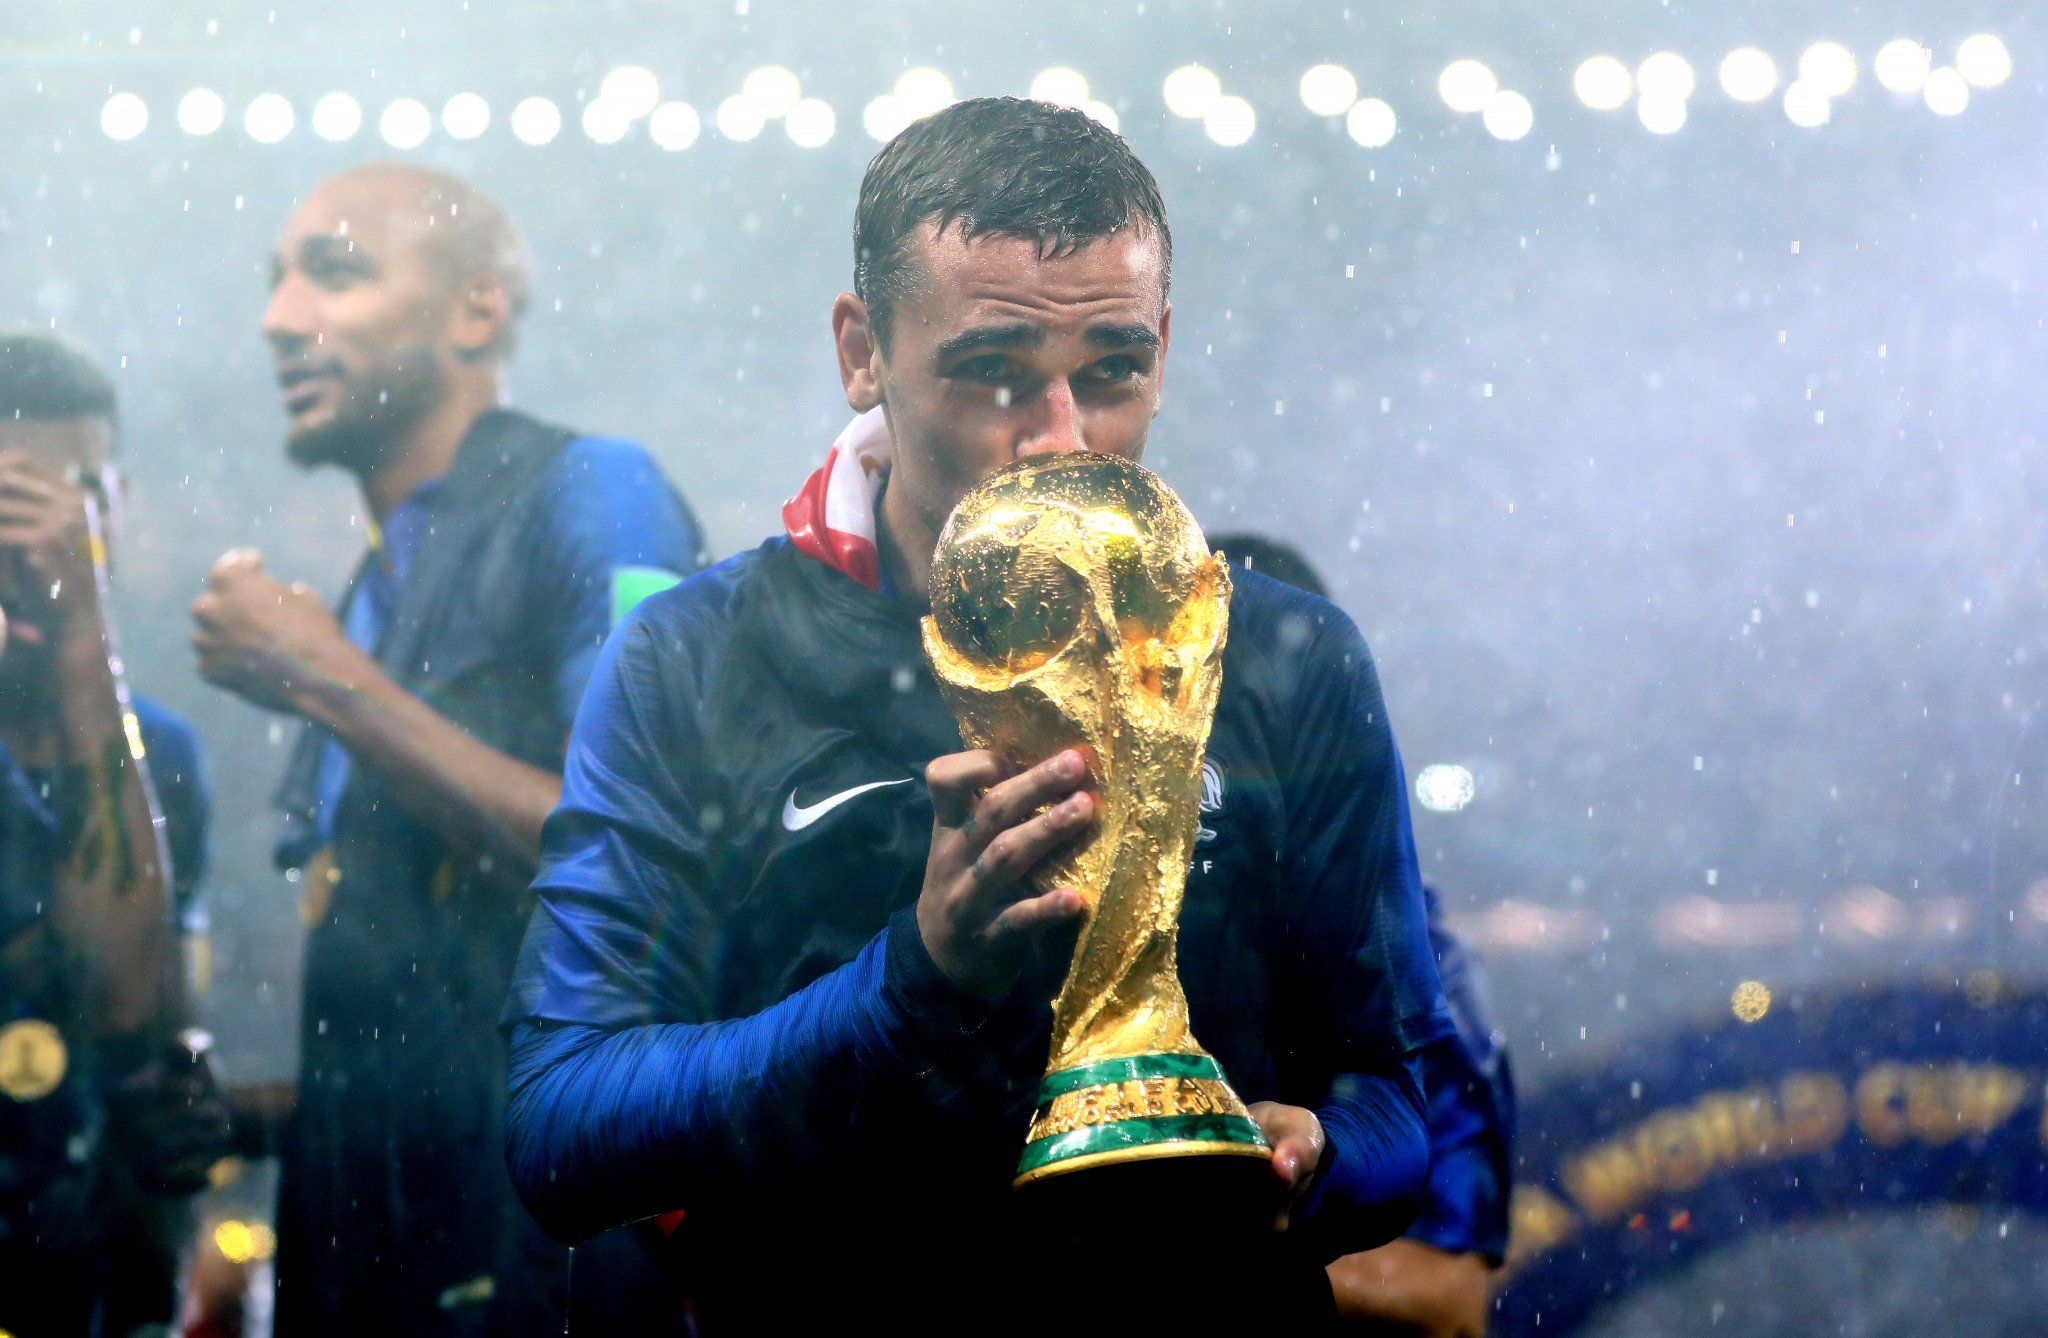 I Ll Be The First To Buy The Jersey With The Two Stars Griezmann Fifaworldcup With Worldcupfinal Antoine Griezmann Griezmann Man Of The Match